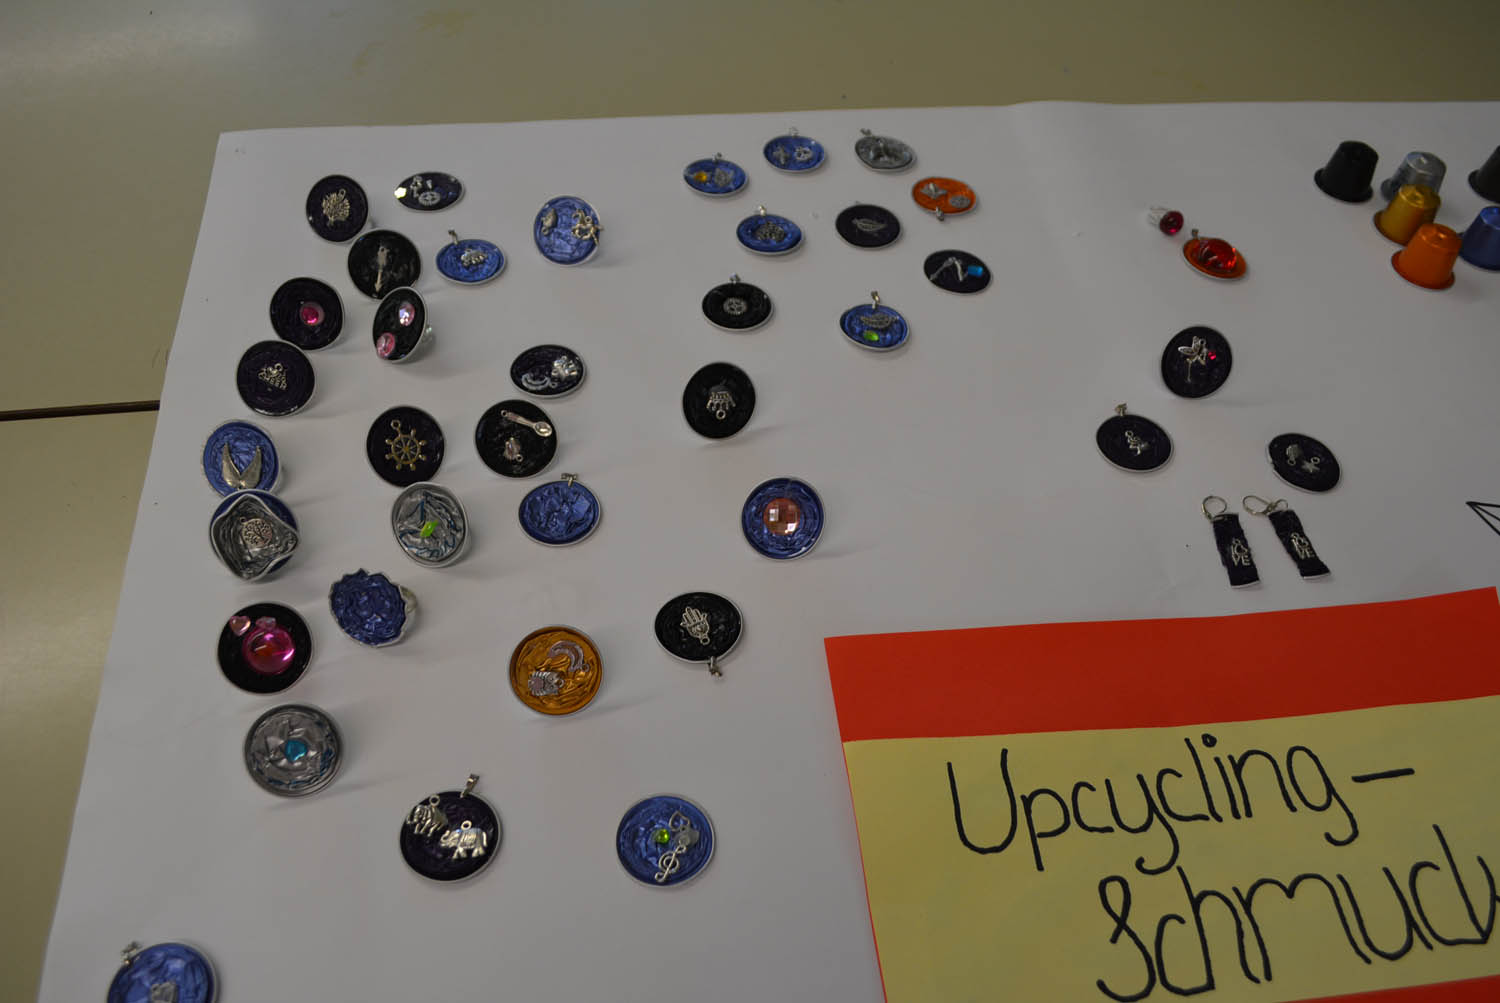 Ludwig-Auer-Schule M7 Upcycling 5